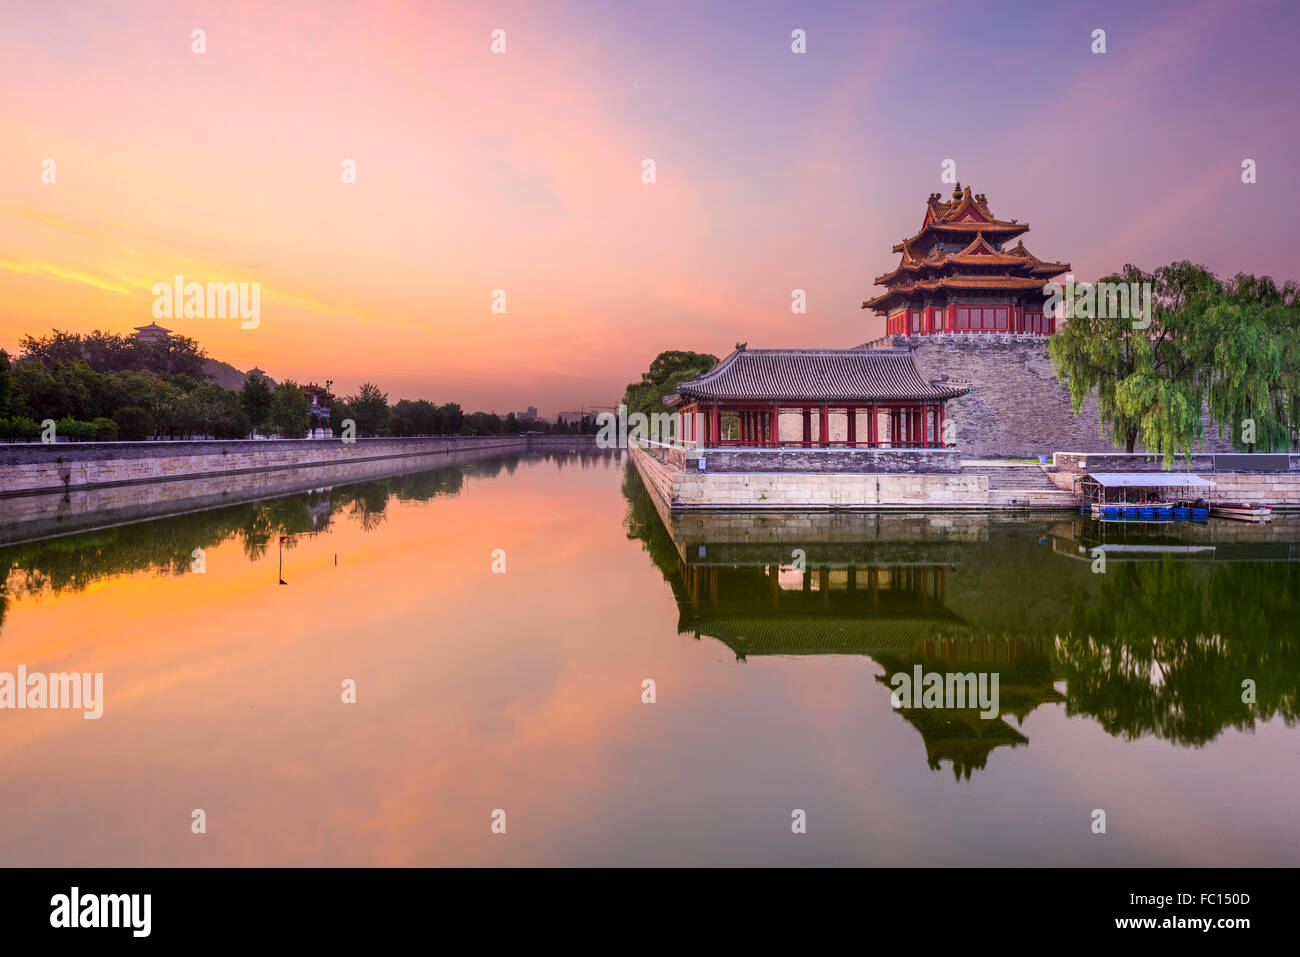 Beijing, China forbidden city outer moat at dawn. Stock Photo